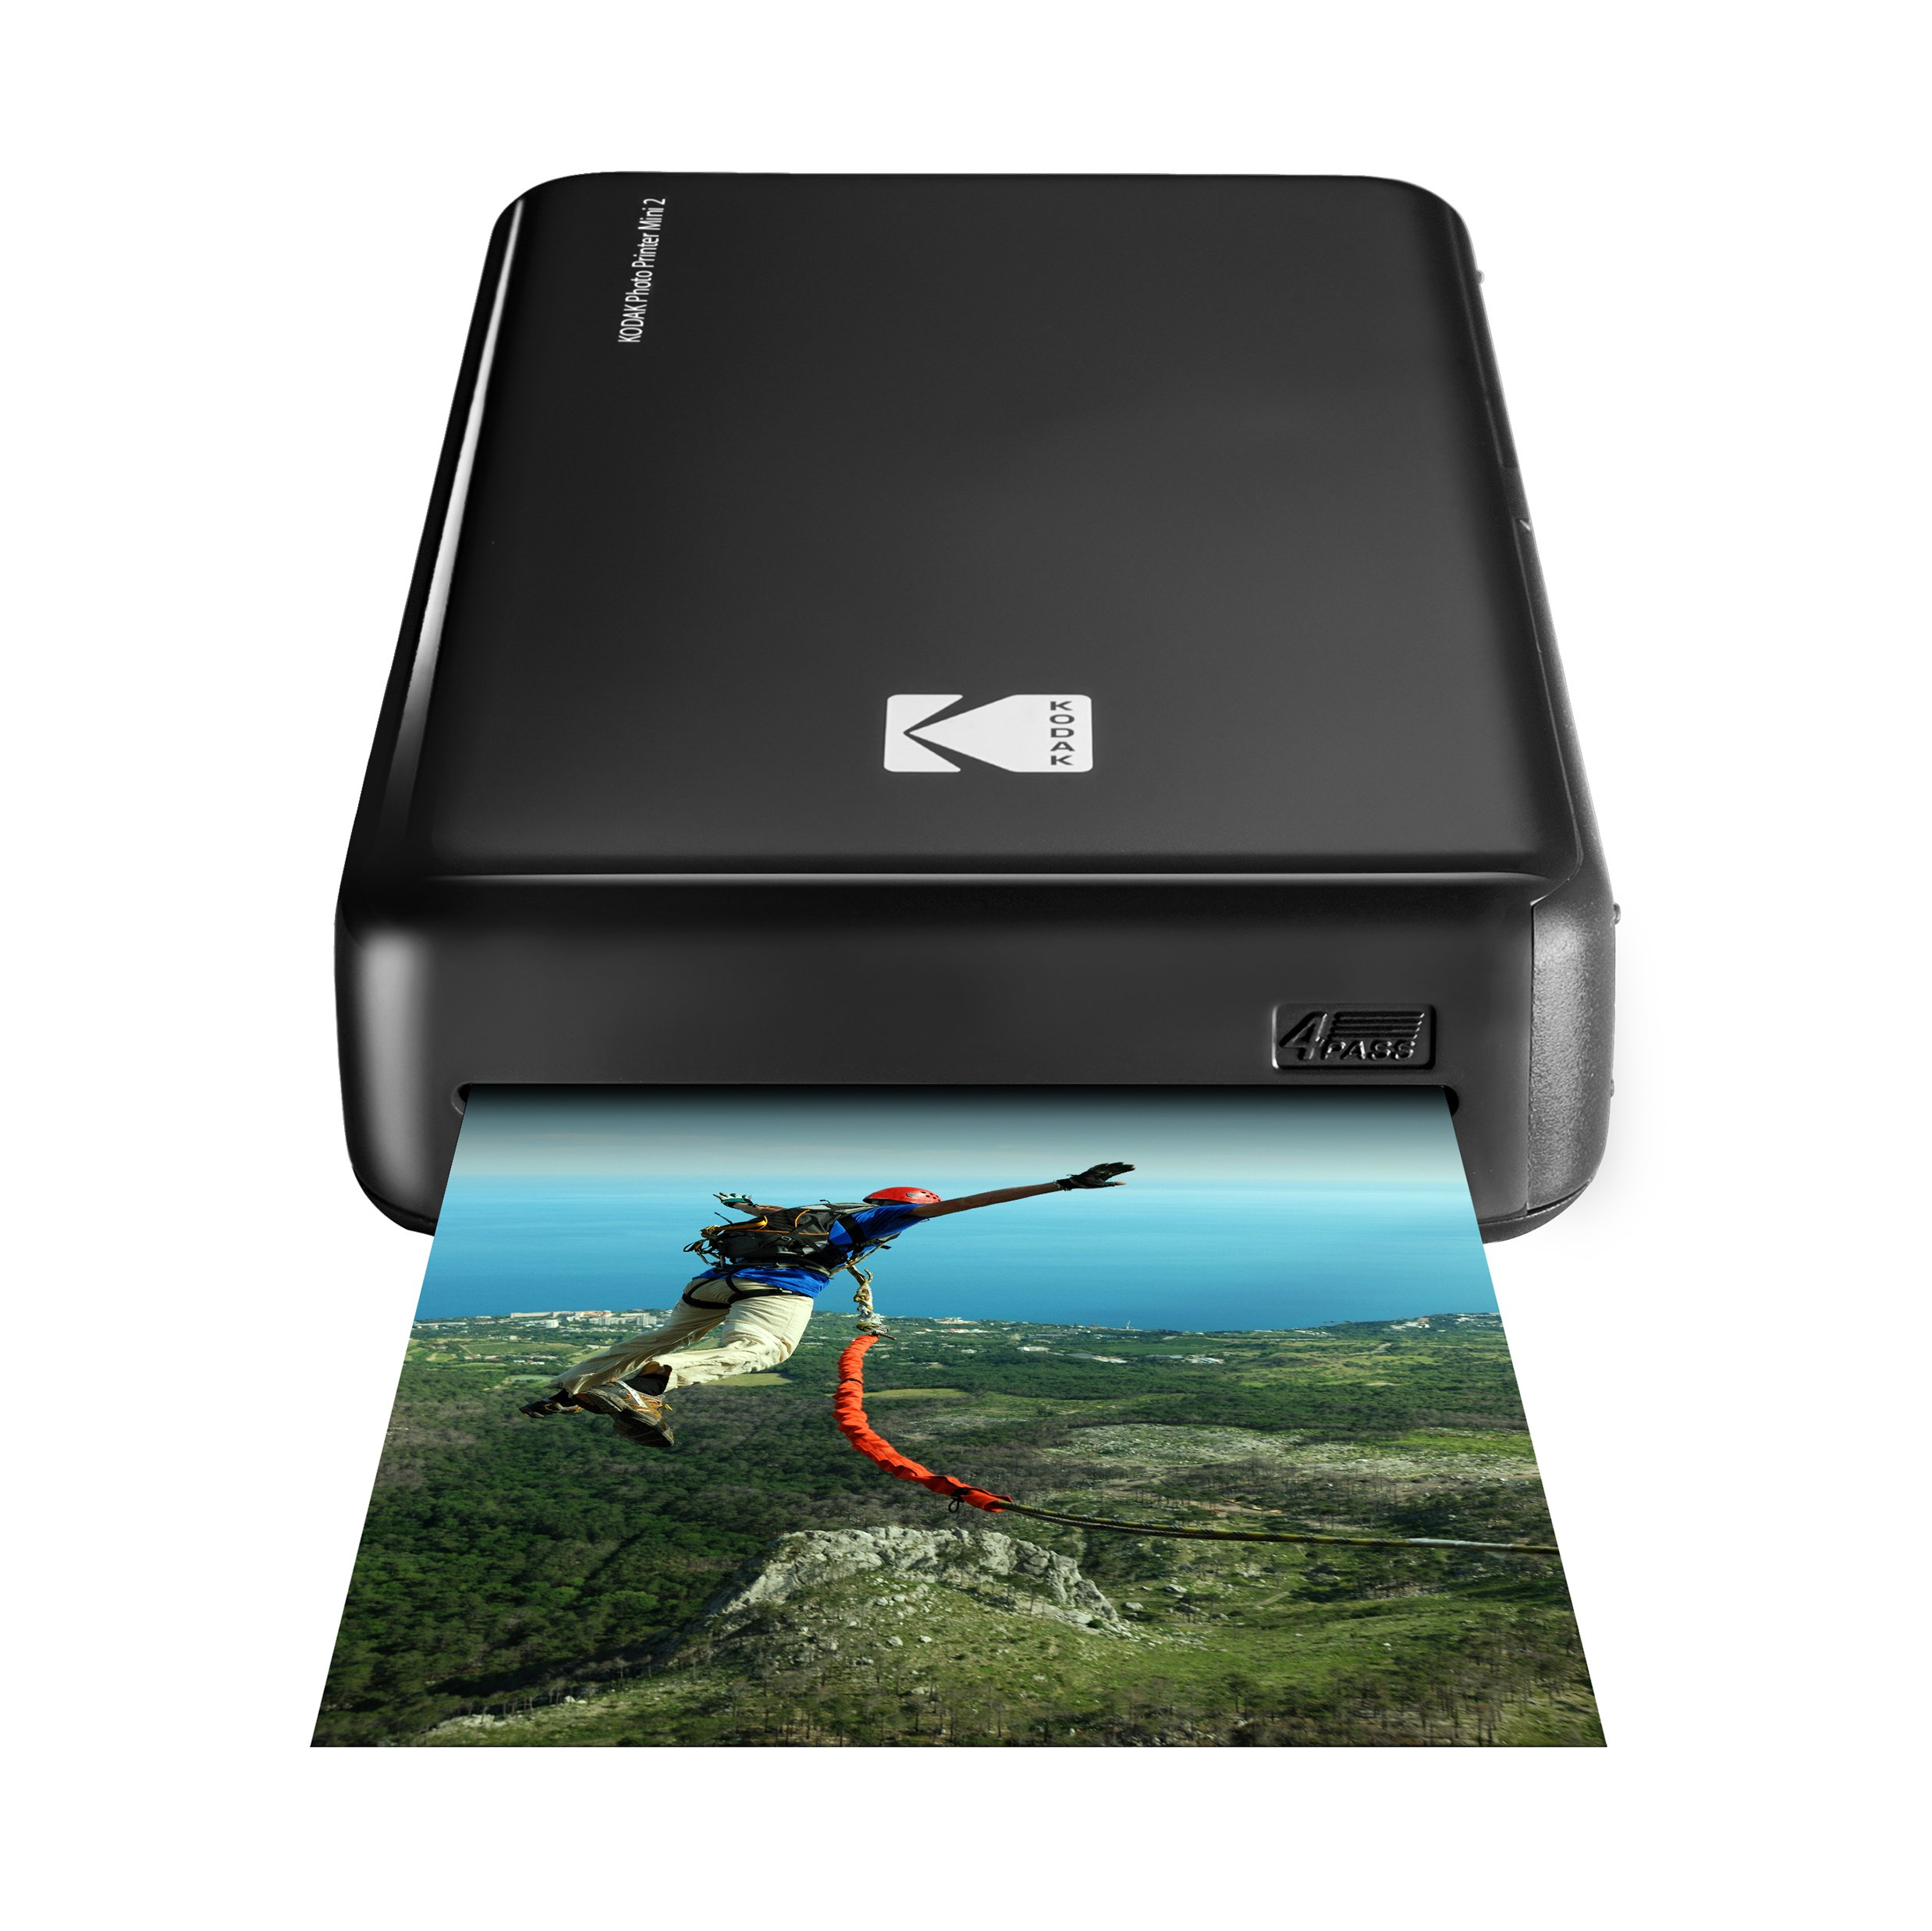 Kodak HD Wireless Portable Mobile Instant Photo Printer, Print Social Media Photos, Premium Quality Full Color Prints. Compatible w/iOS and Android Devices (Black) by KODAK